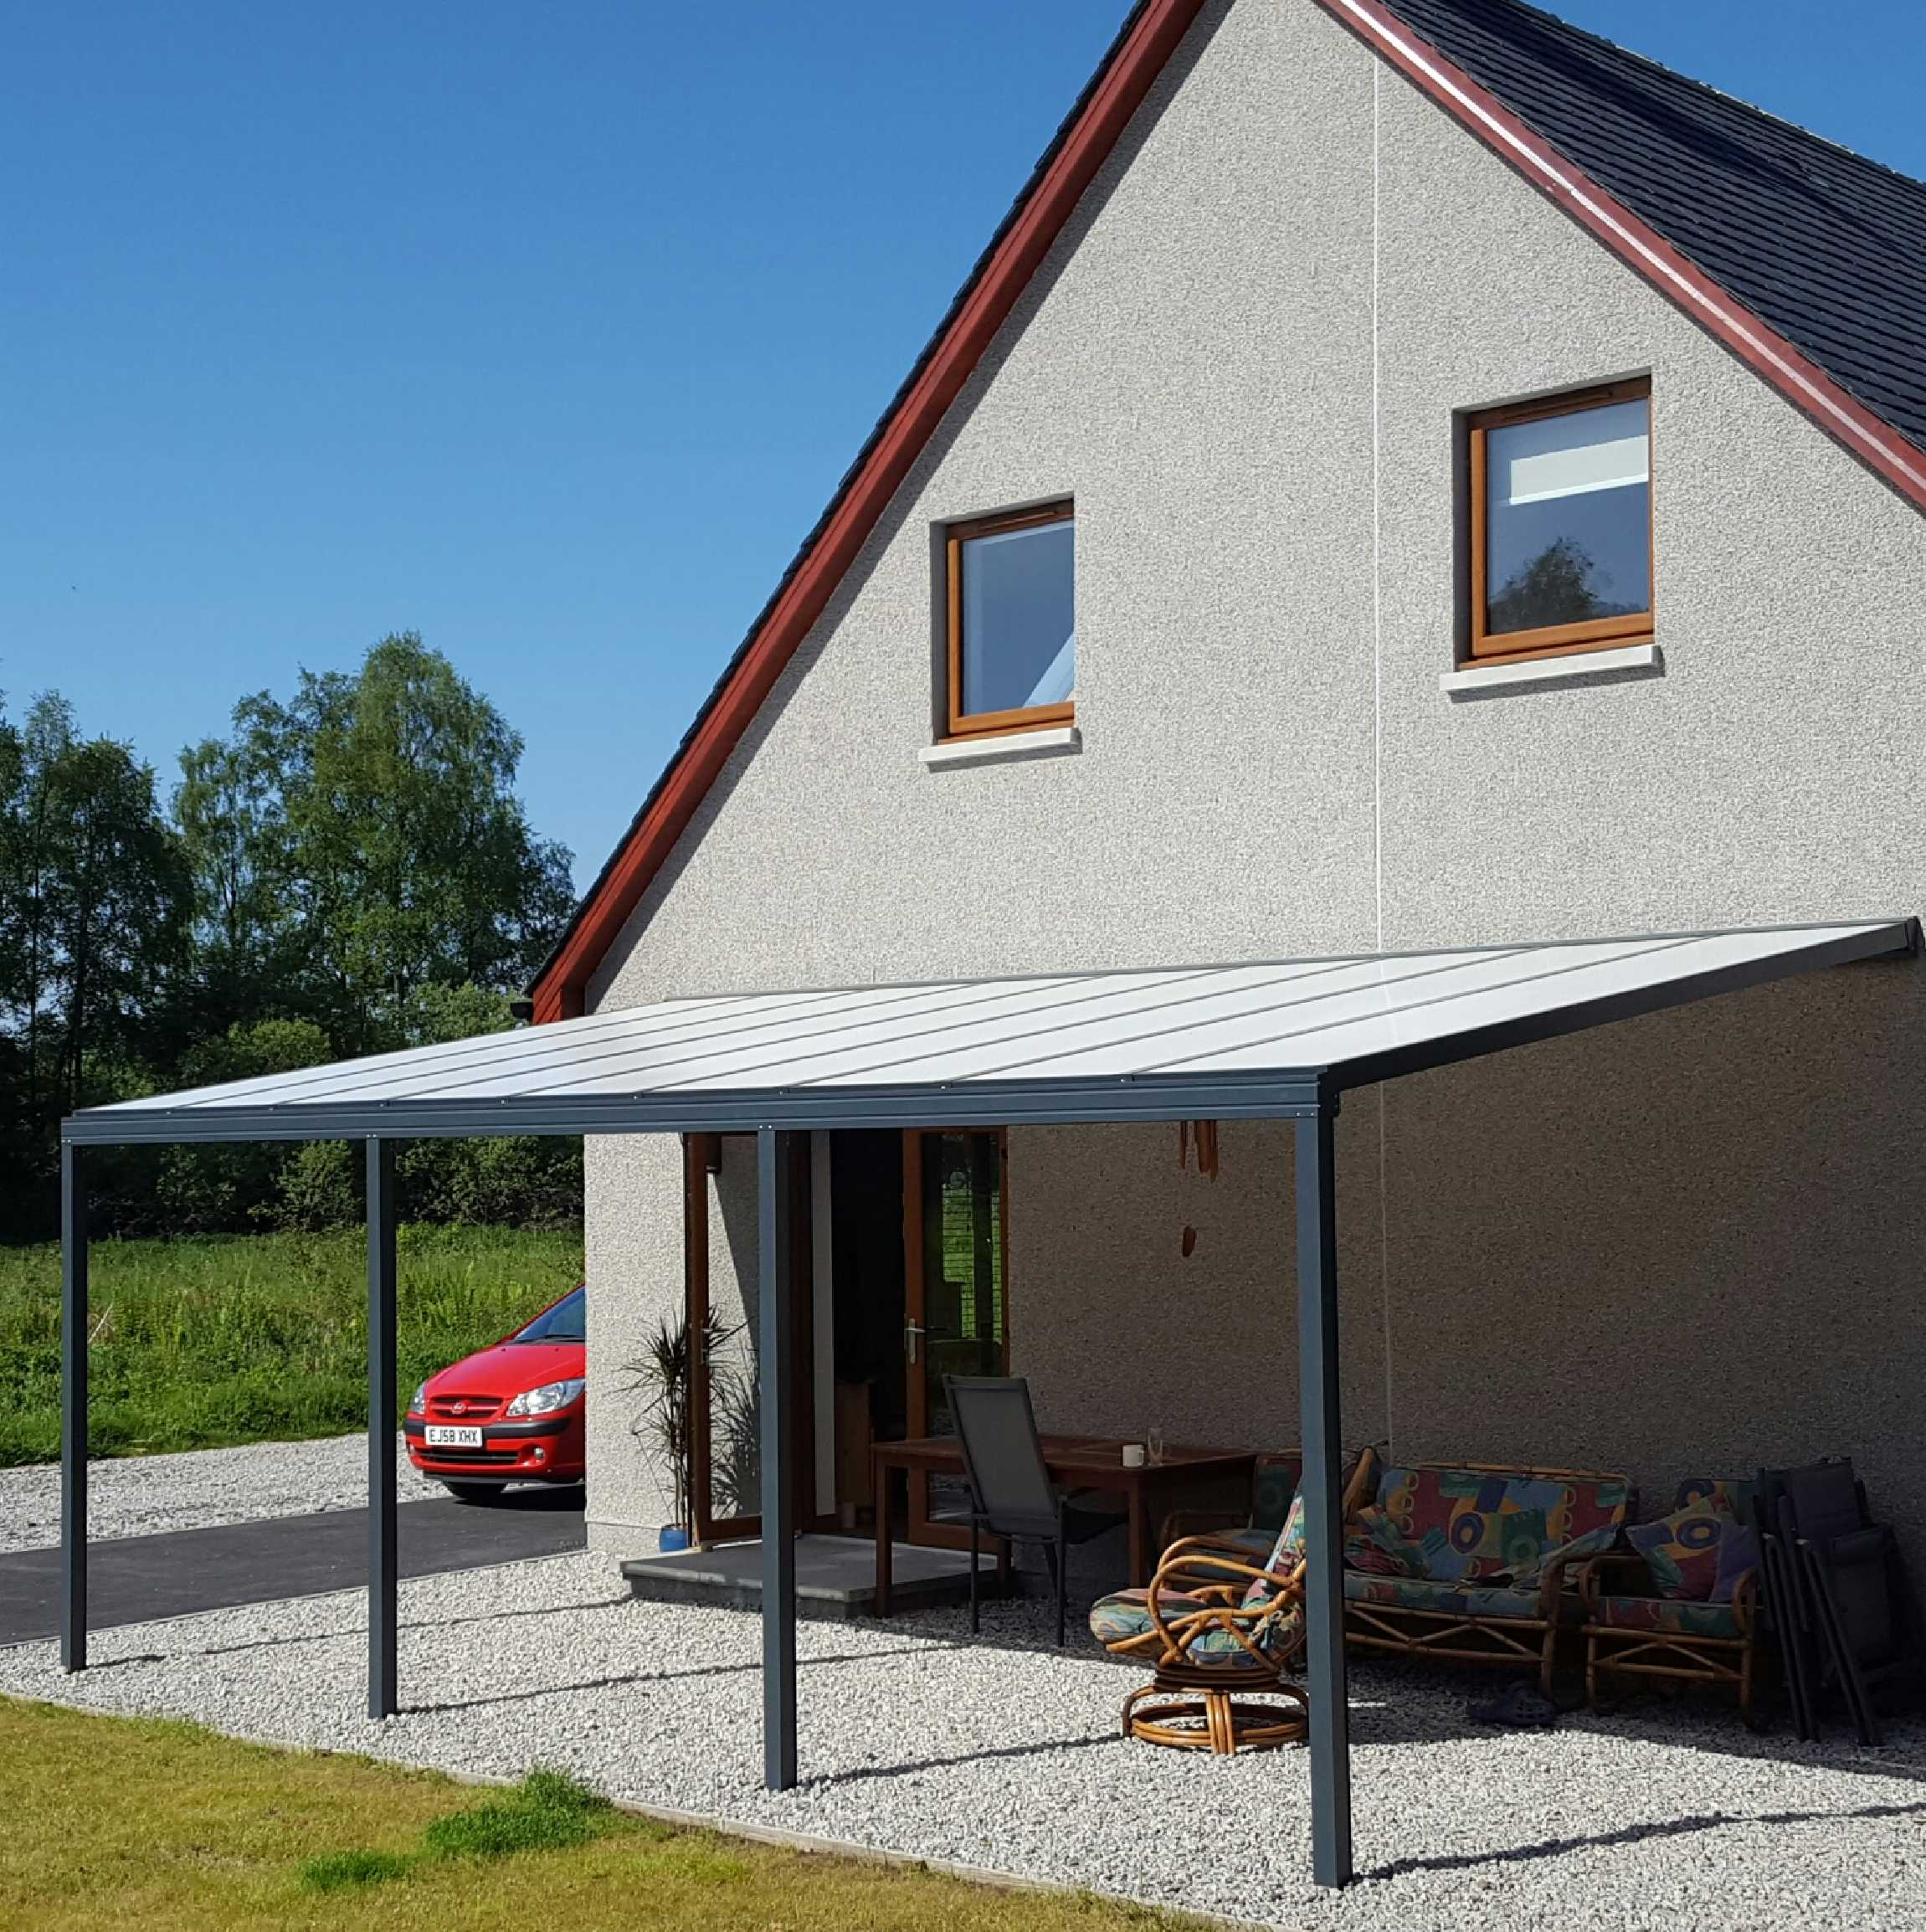 Great selection of Omega Smart Lean-To Canopy, Anthracite Grey, 16mm Polycarbonate Glazing - 4.2m (W) x 2.0m (P), (3) Supporting Posts